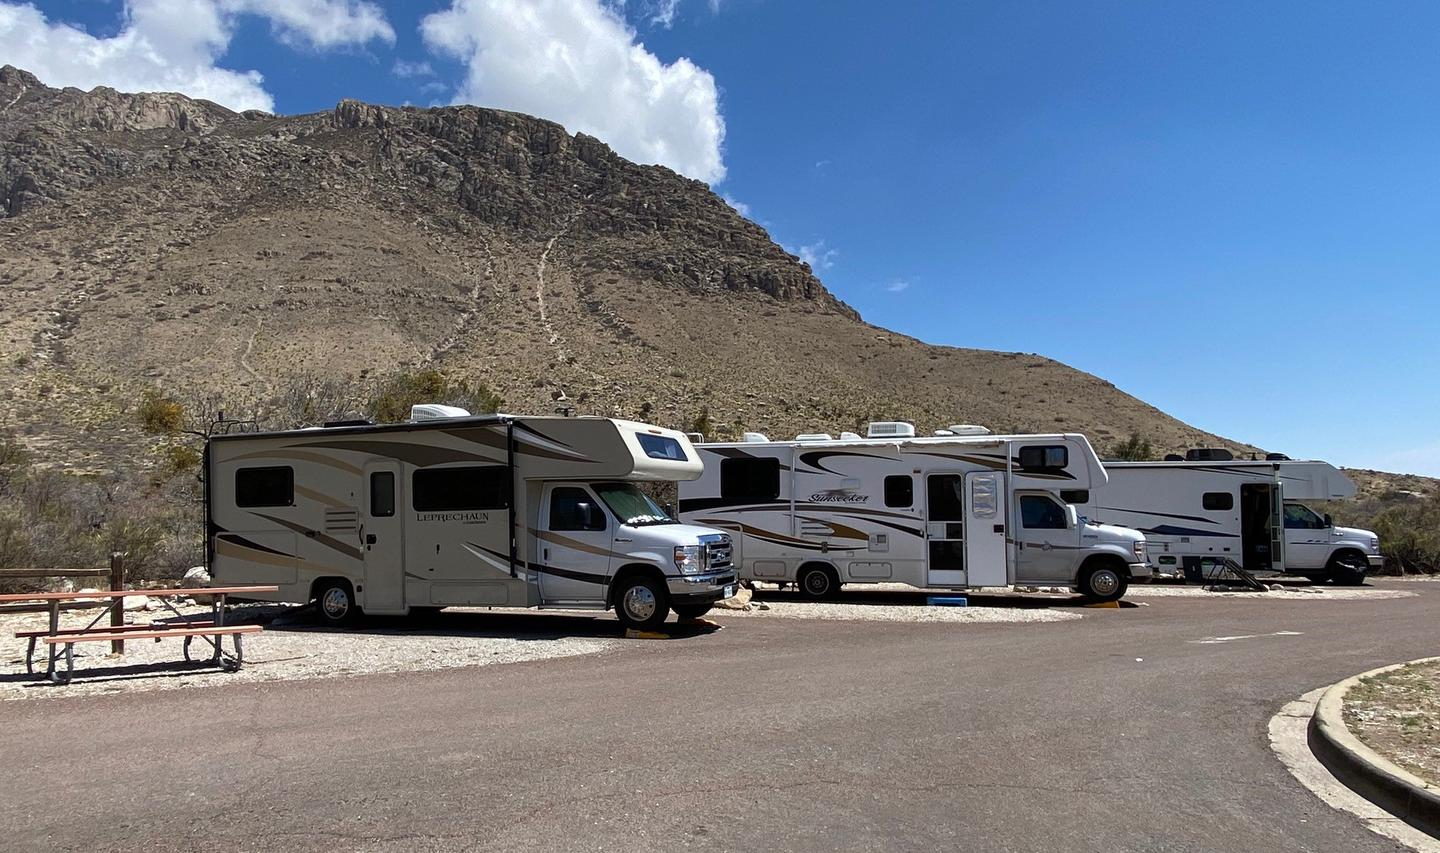 RV Campsites 31, 32 and 33 are occupied by RVs in this photo.  These short, paved, pull-in site limit vehicle size.  RV Campsites 31, 32 and 33.  Site 33 is to the left side of the photo.